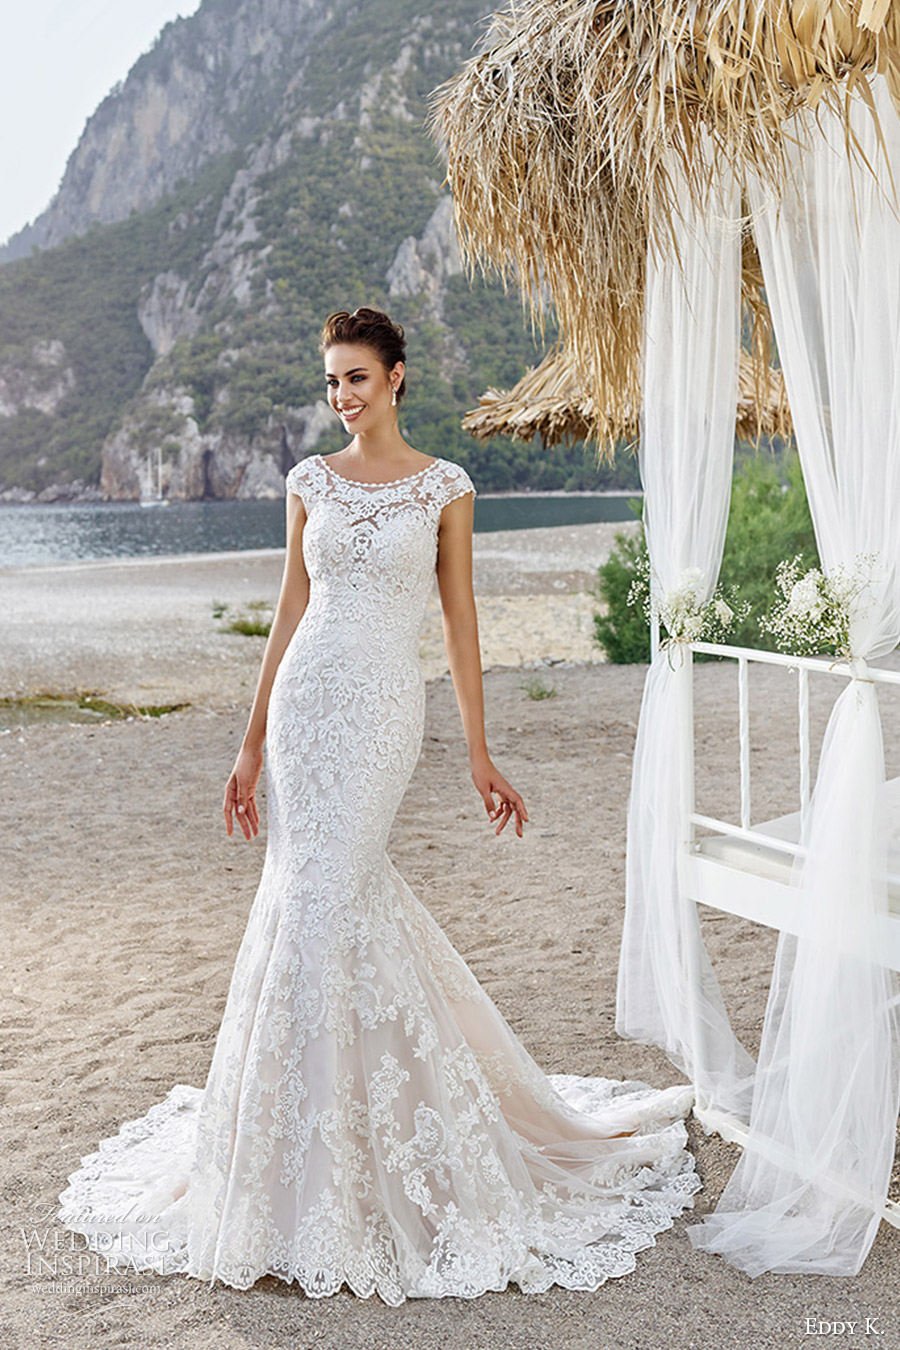 Fustane Nusesh !! - Faqe 28 Eddy-k-bridal-2017-cap-sleeves-sweetheart-illusion-scoop-neck-fit-flare-mermaid-lace-wedding-dress-bella-mv-scallop-train